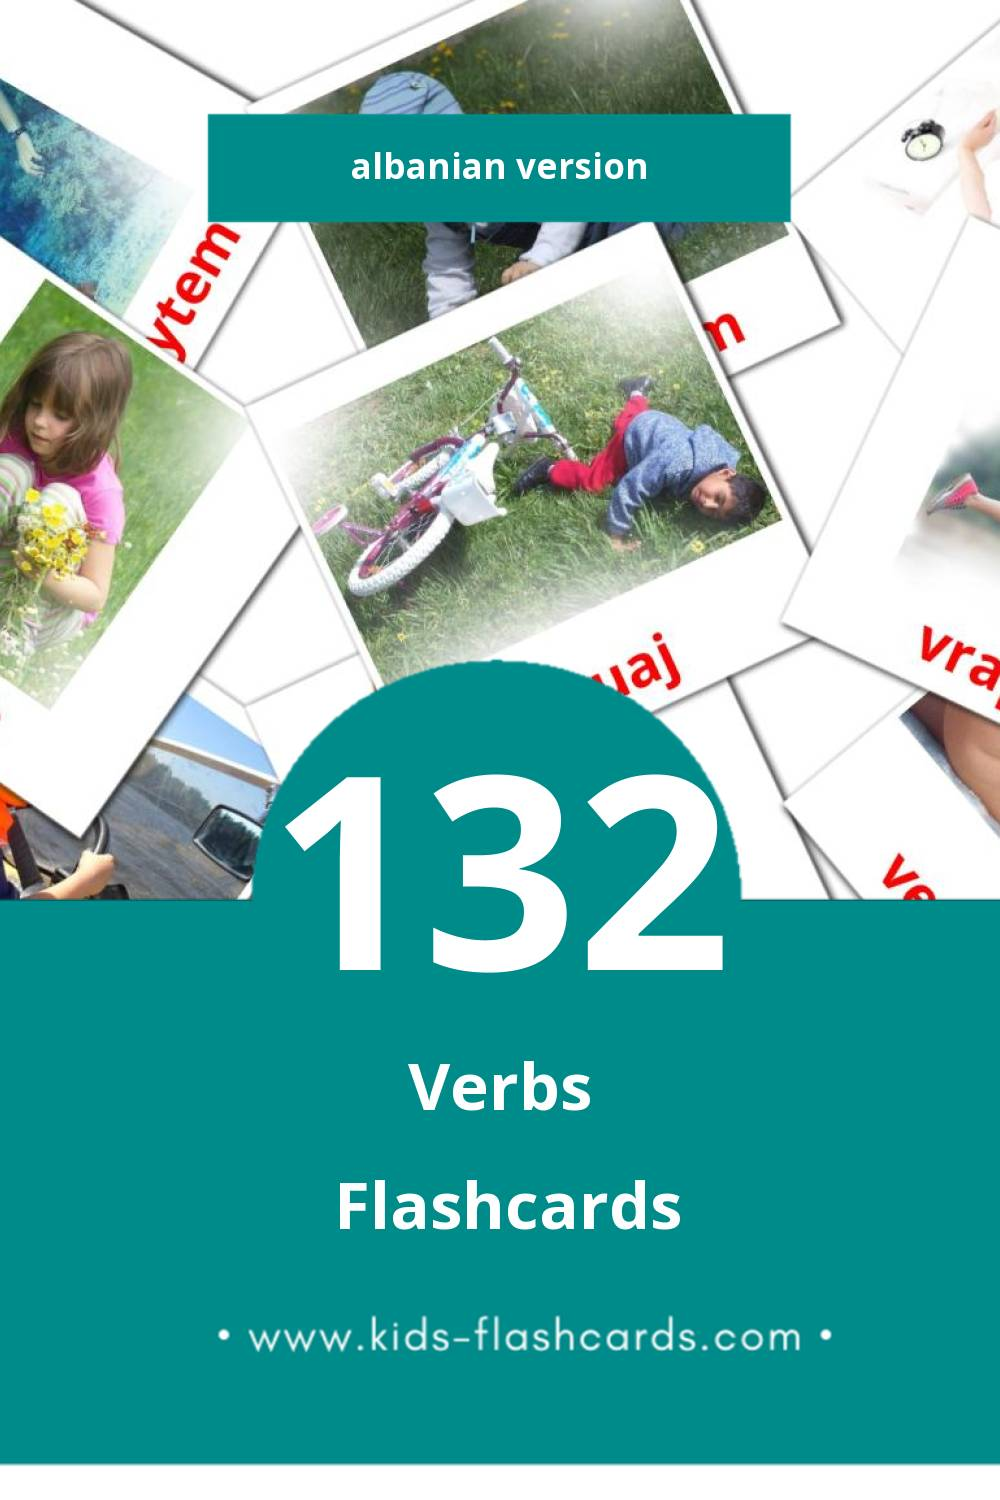 Visual Folje Flashcards for Toddlers (77 cards in Albanian)